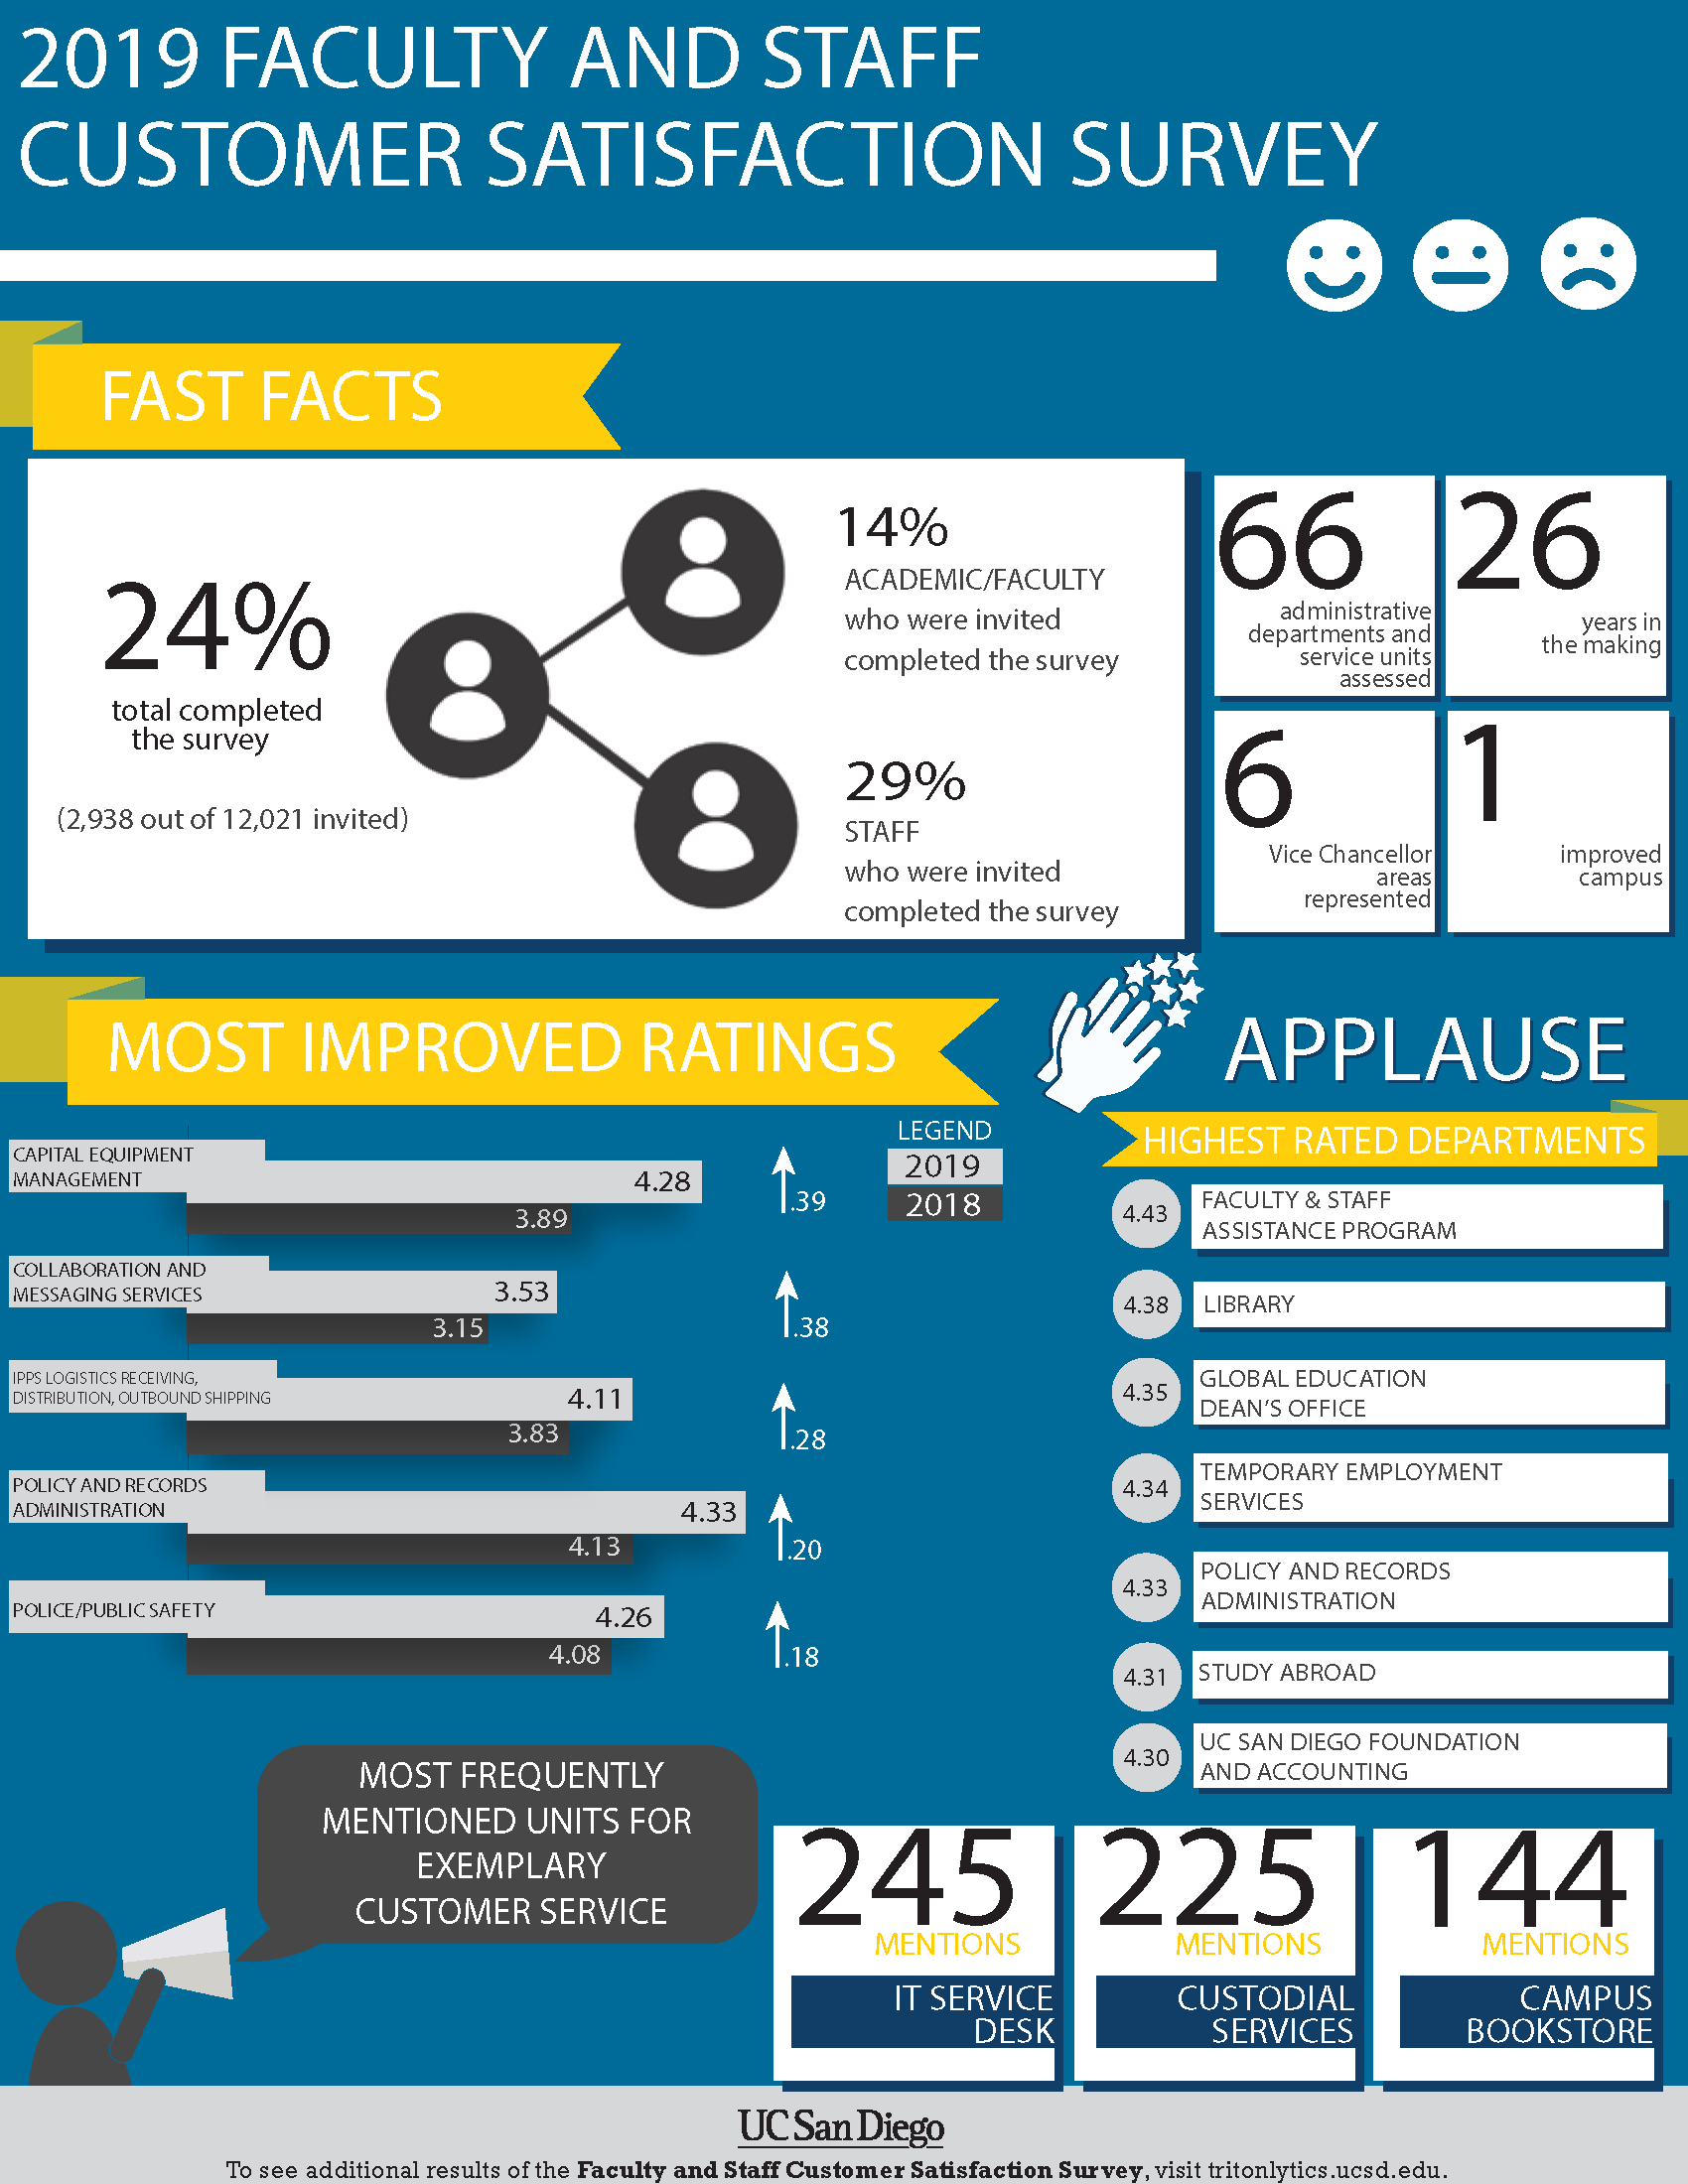 2019 Customer Satisfaction Survey Infographic